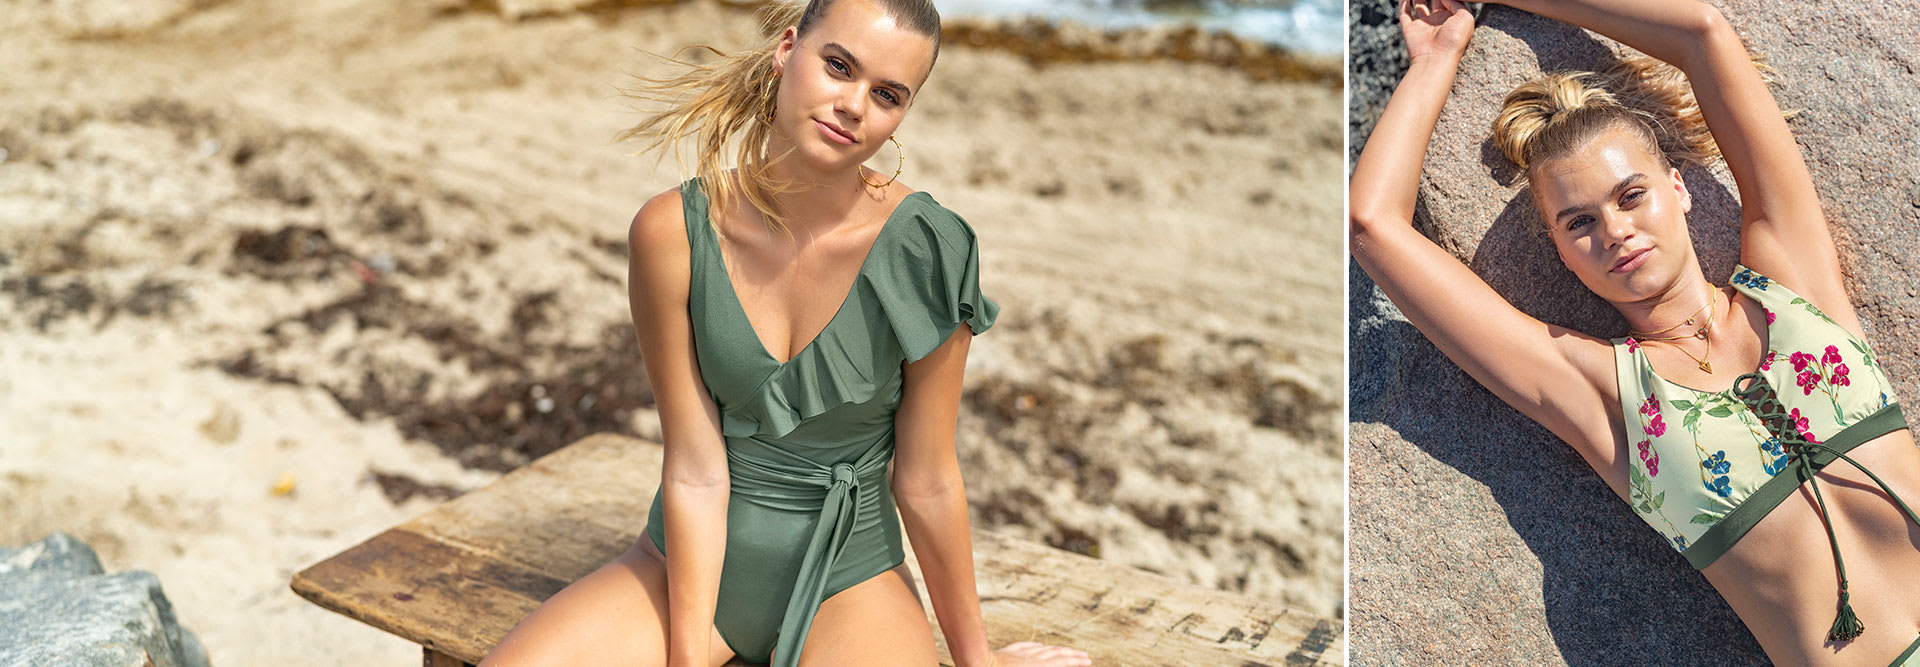 8 Tips to Extend The Life of Your Bathing Suits